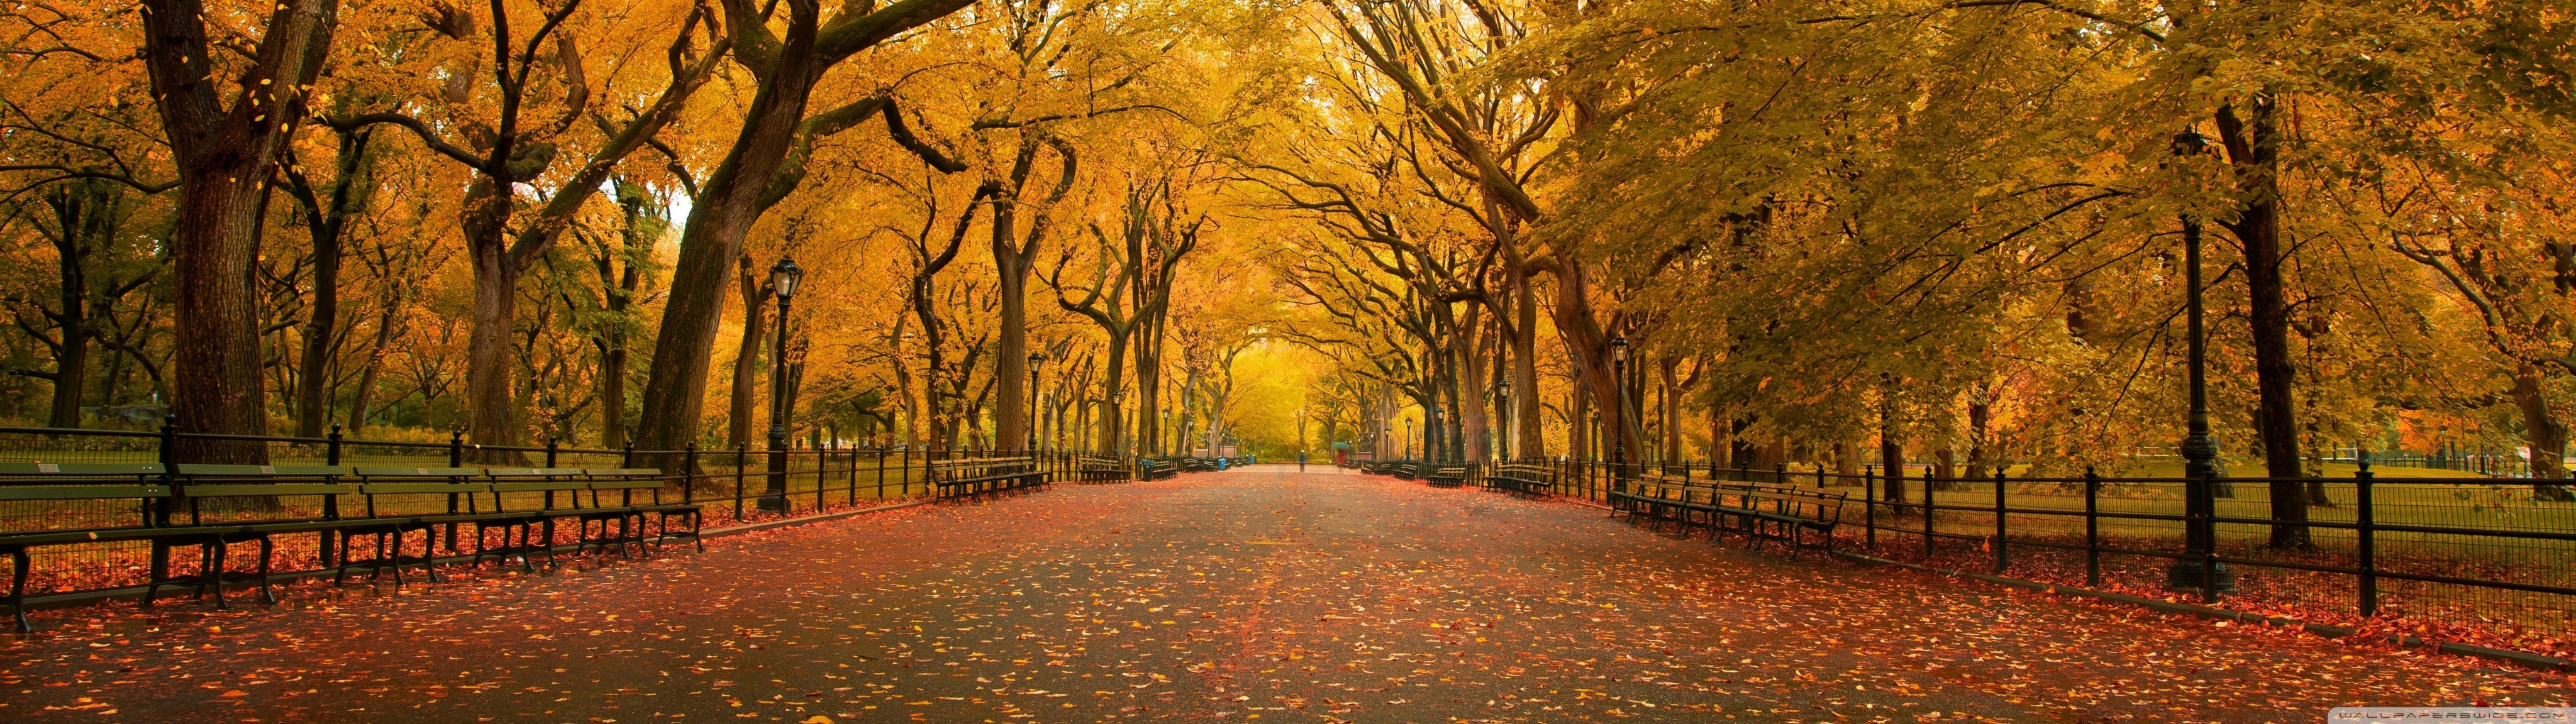 Fall Wallpaper For Android Tablet Wide Alley Hd Desktop Wallpaper High Definition